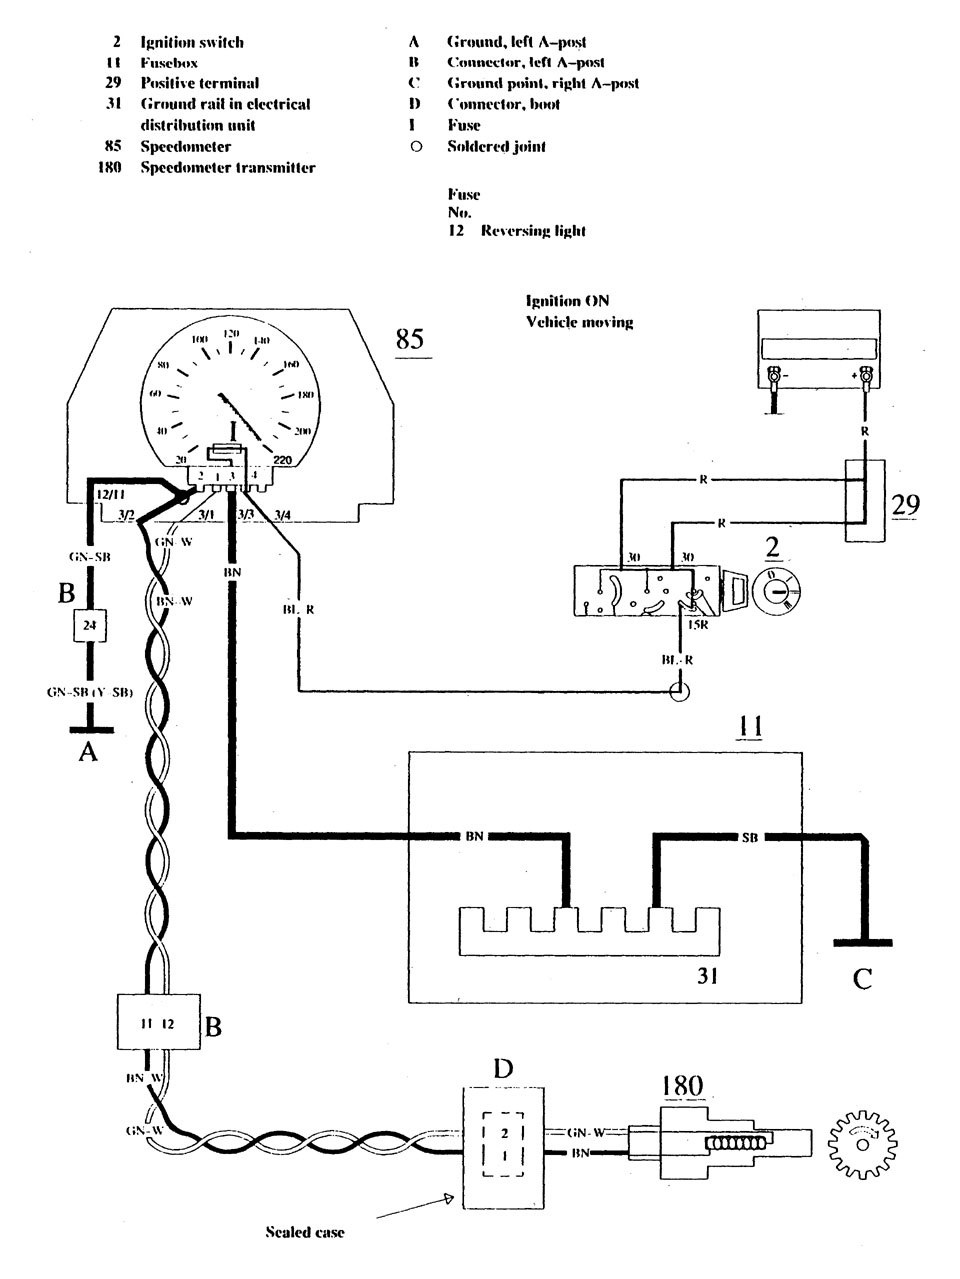 Wiring Diagram For 1990 Volvo 740 : Volvo electrical diagram wiring diagrams